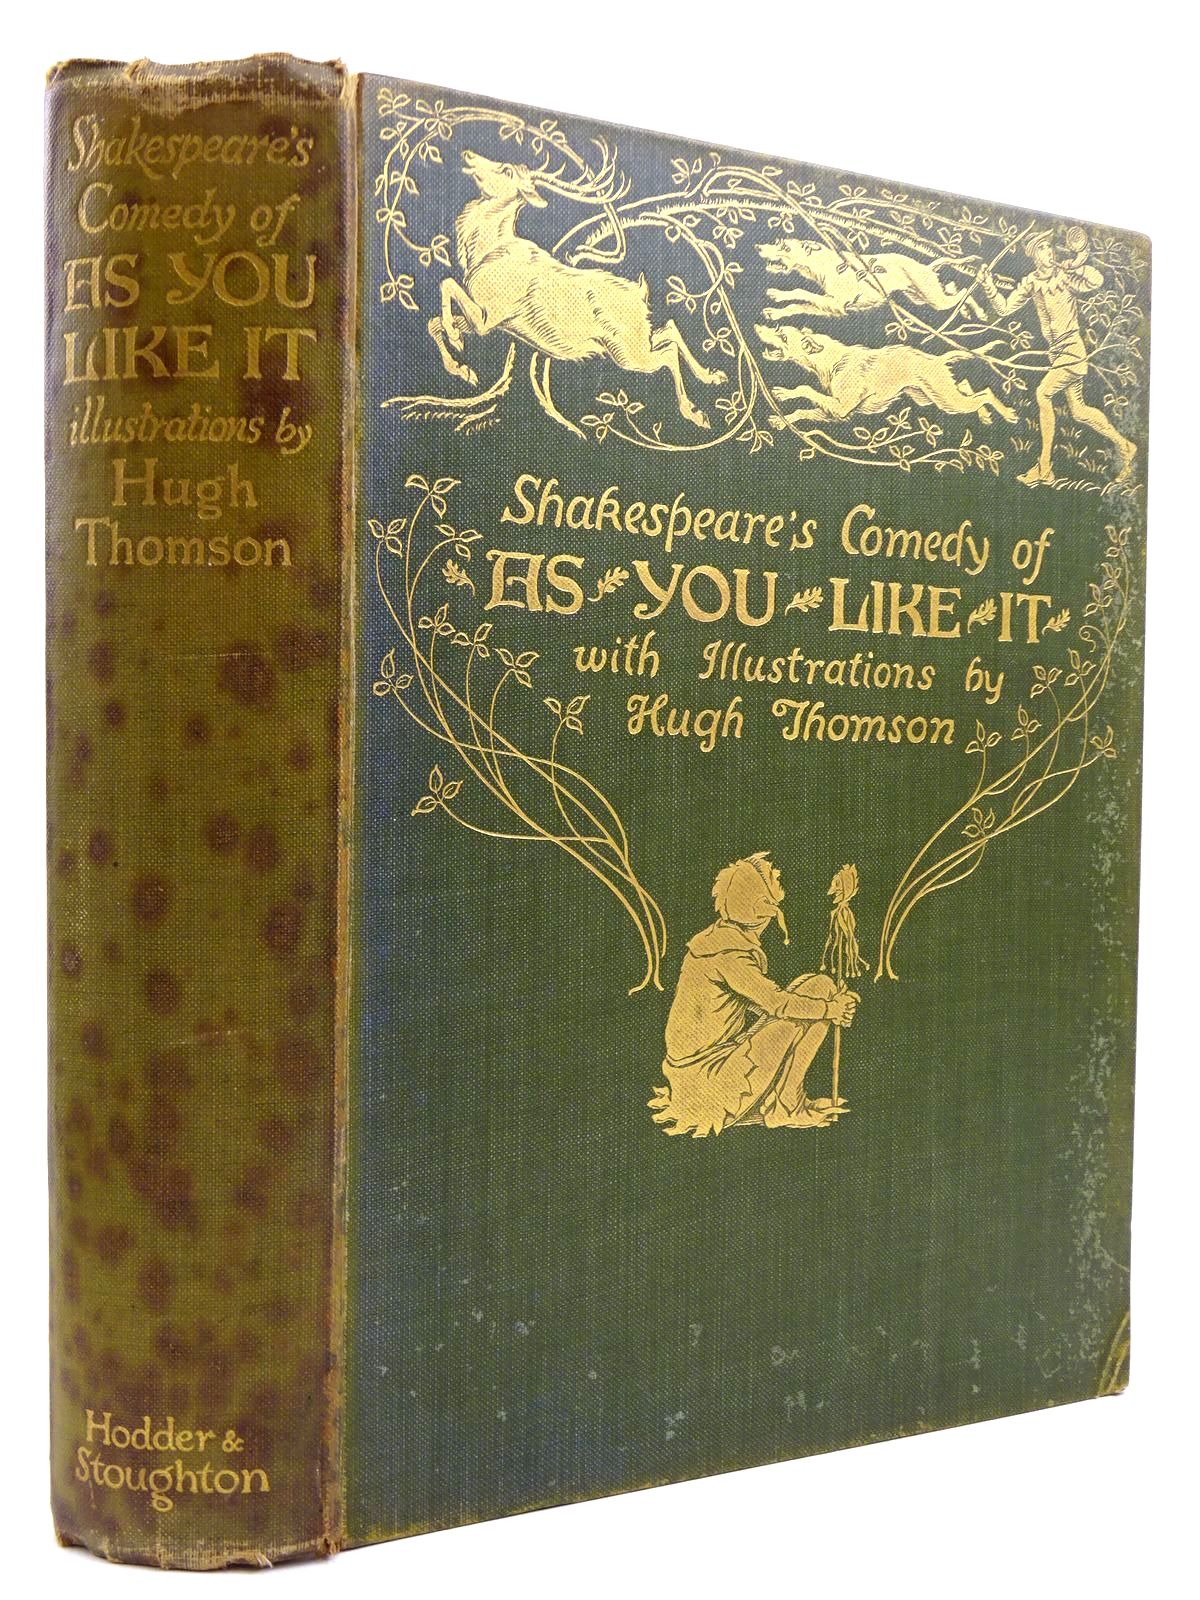 Photo of SHAKESPEARE'S COMEDY - AS YOU LIKE IT written by Shakespeare, William illustrated by Thomson, Hugh published by Hodder & Stoughton (STOCK CODE: 2131286)  for sale by Stella & Rose's Books